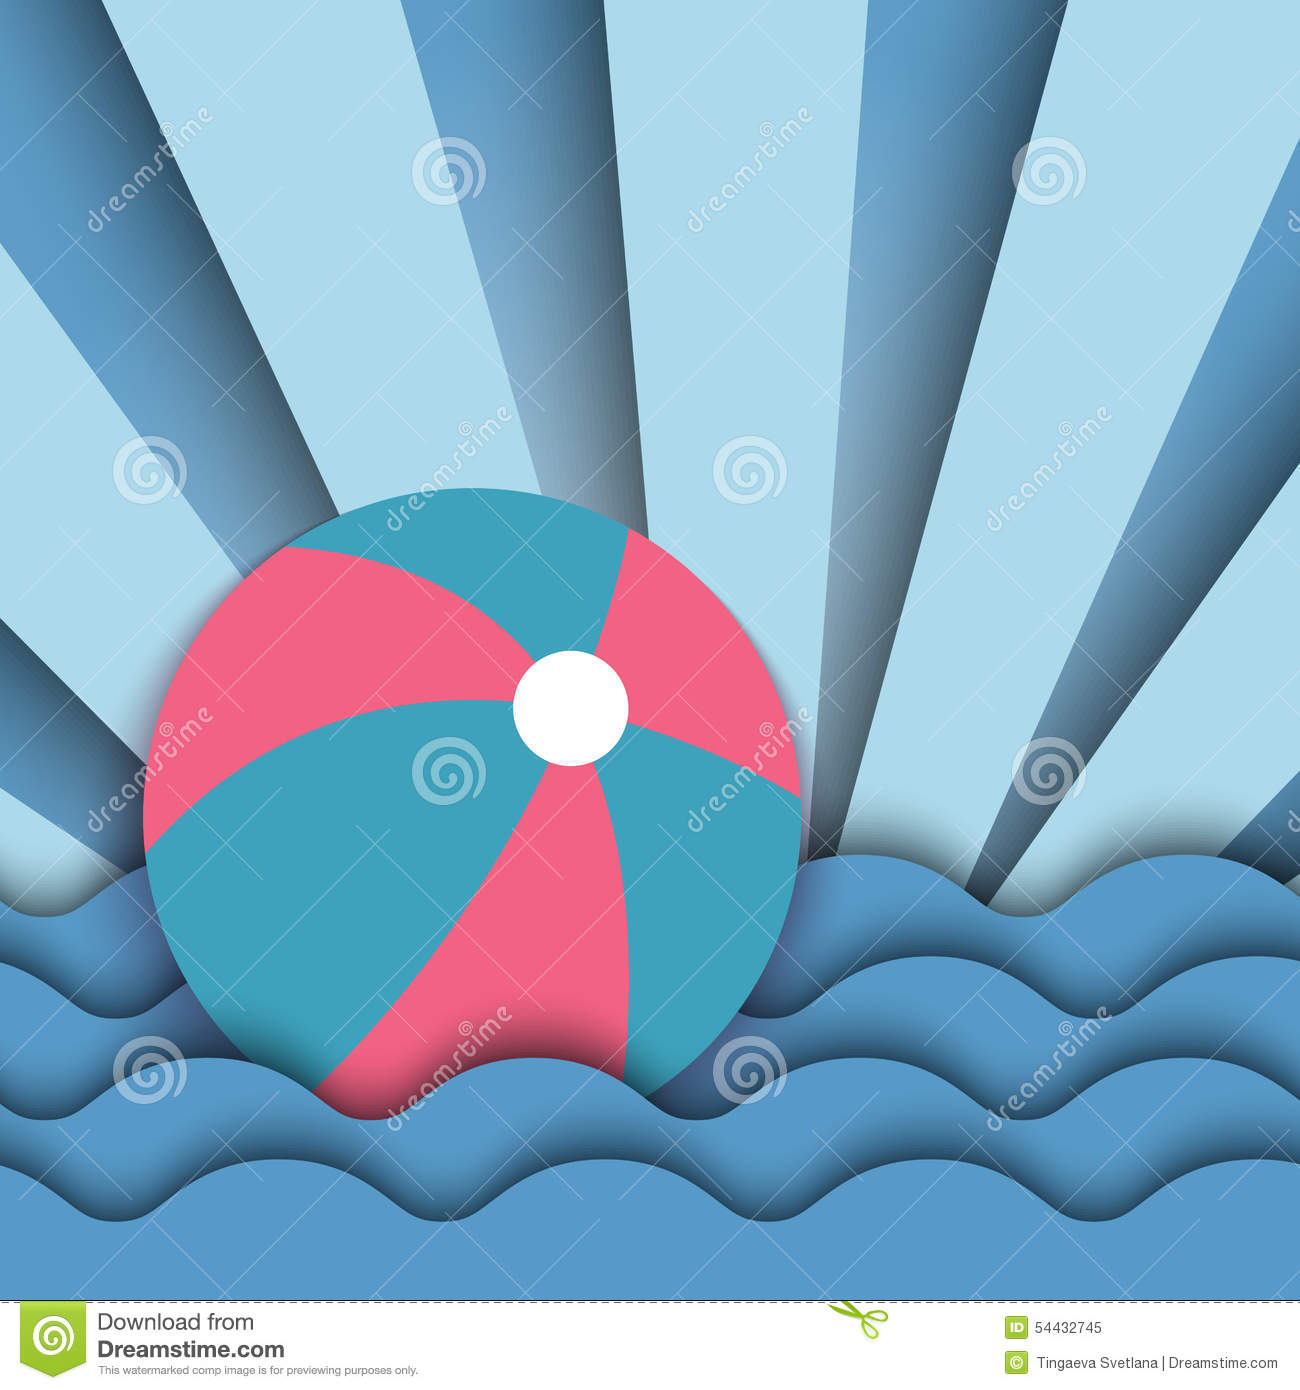 Beach Ball In Water beach ball on the waves of the water stock vector - image: 54432745